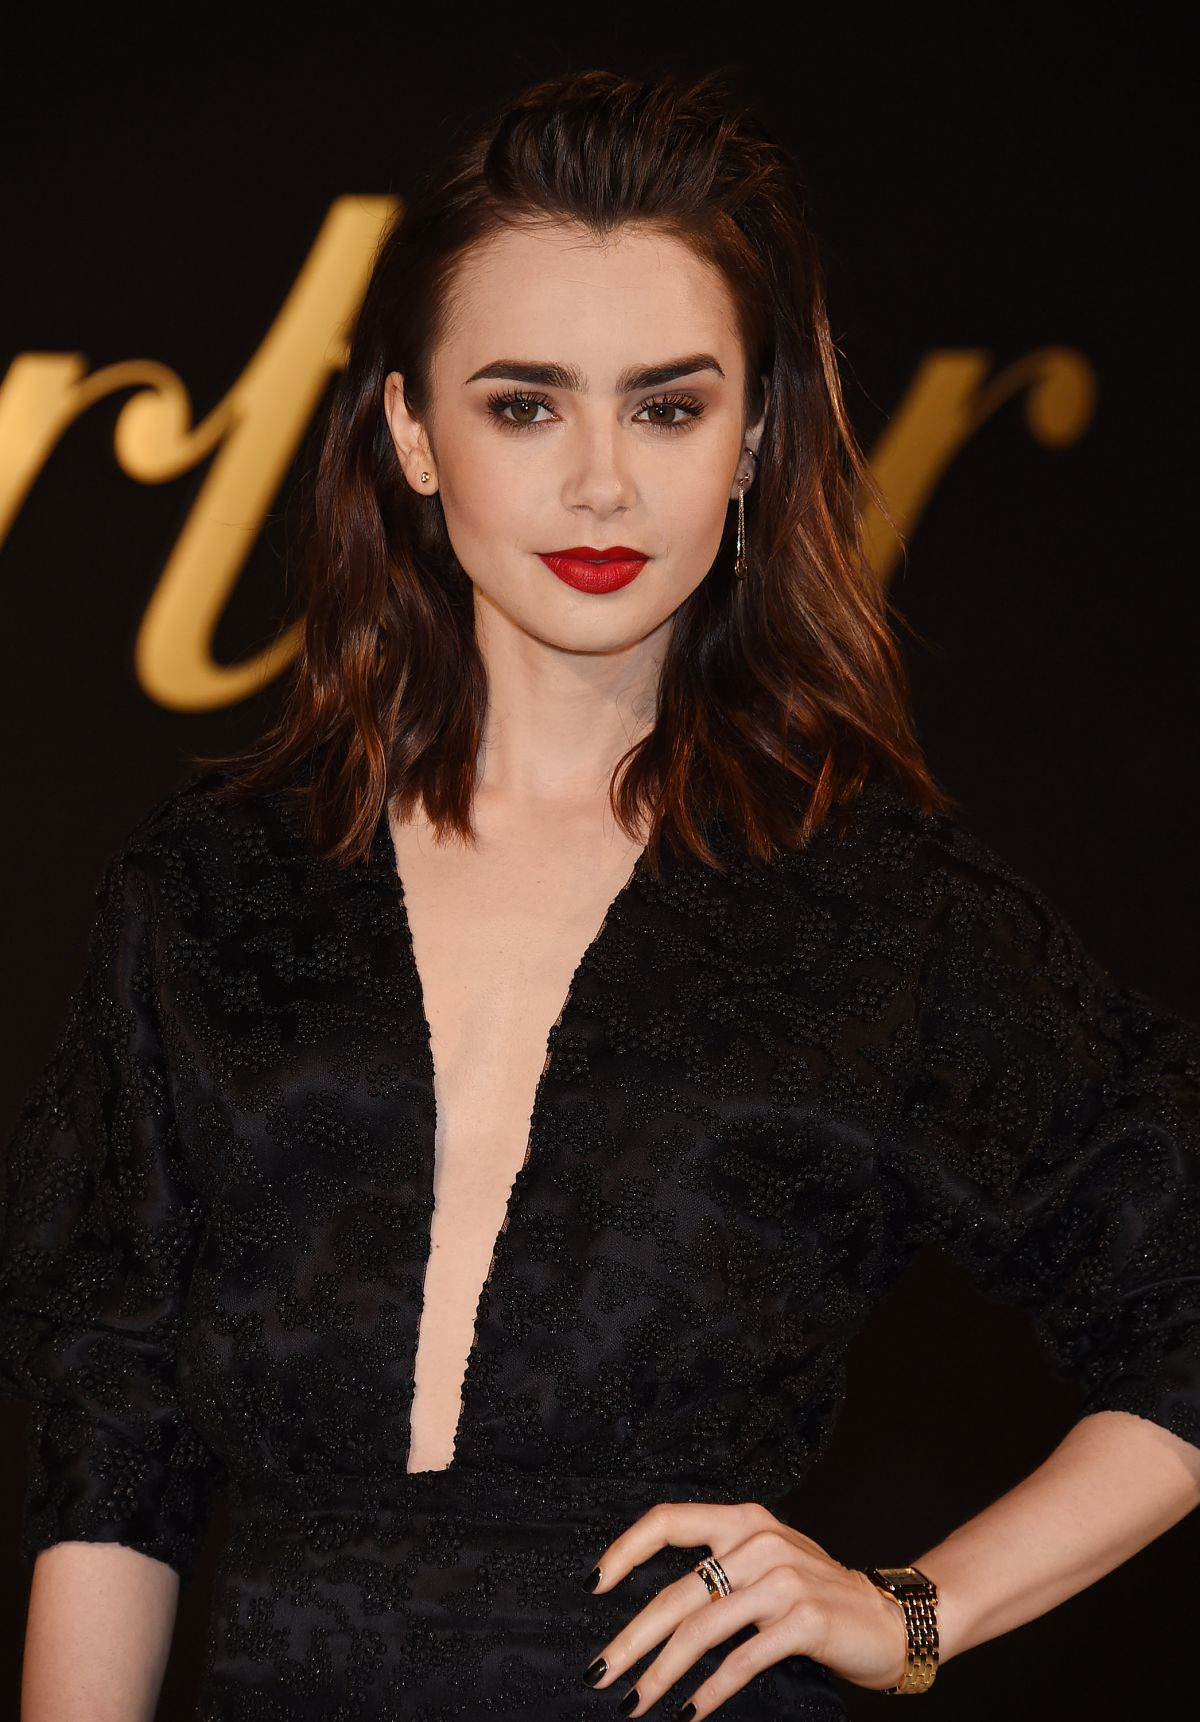 Lily collins panthere de cartier watch launch in la